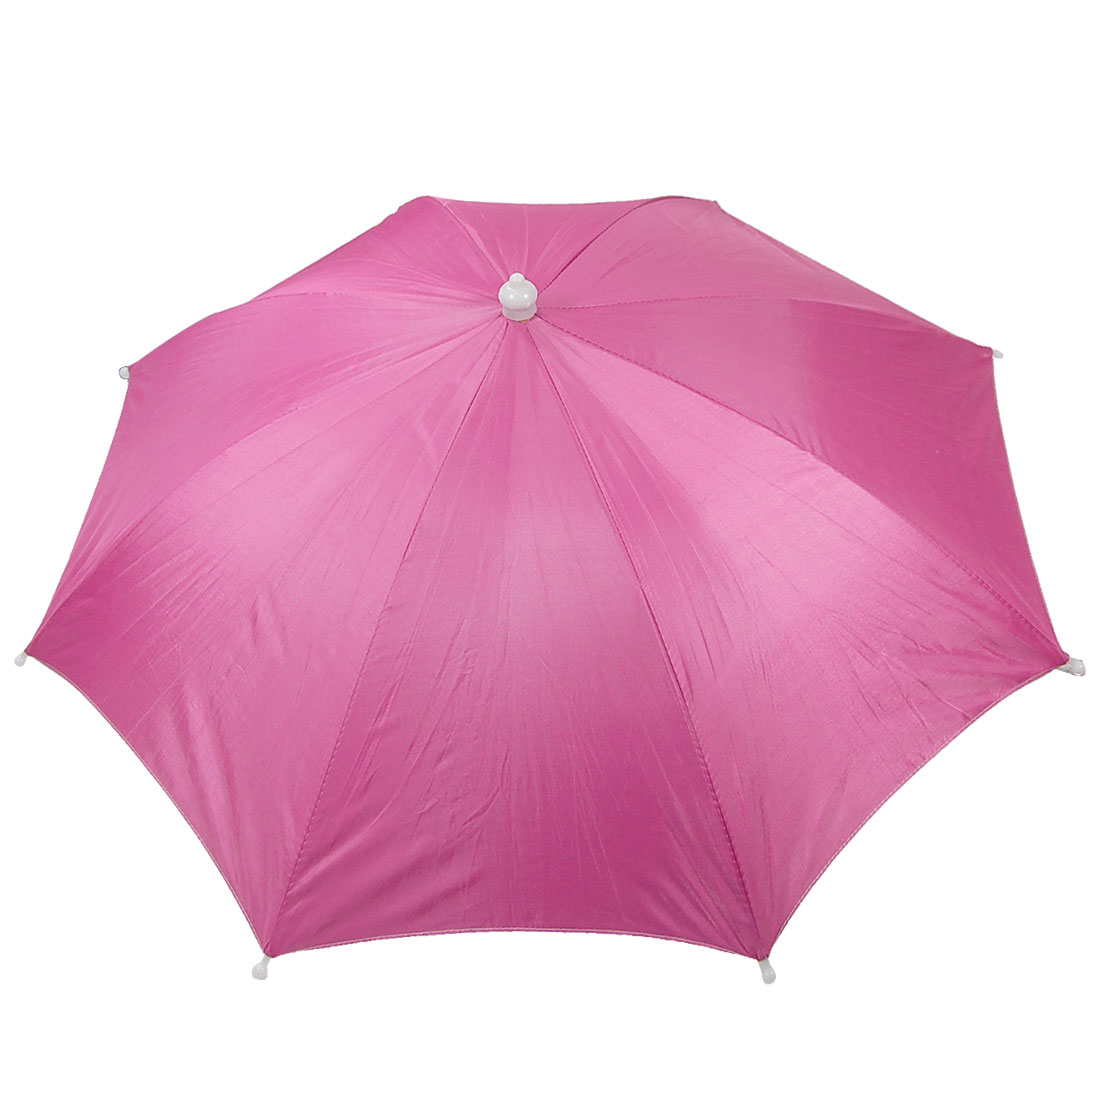 Fishing Golf Beach Sun Shade Umbrella Hat Cap Fuchsia